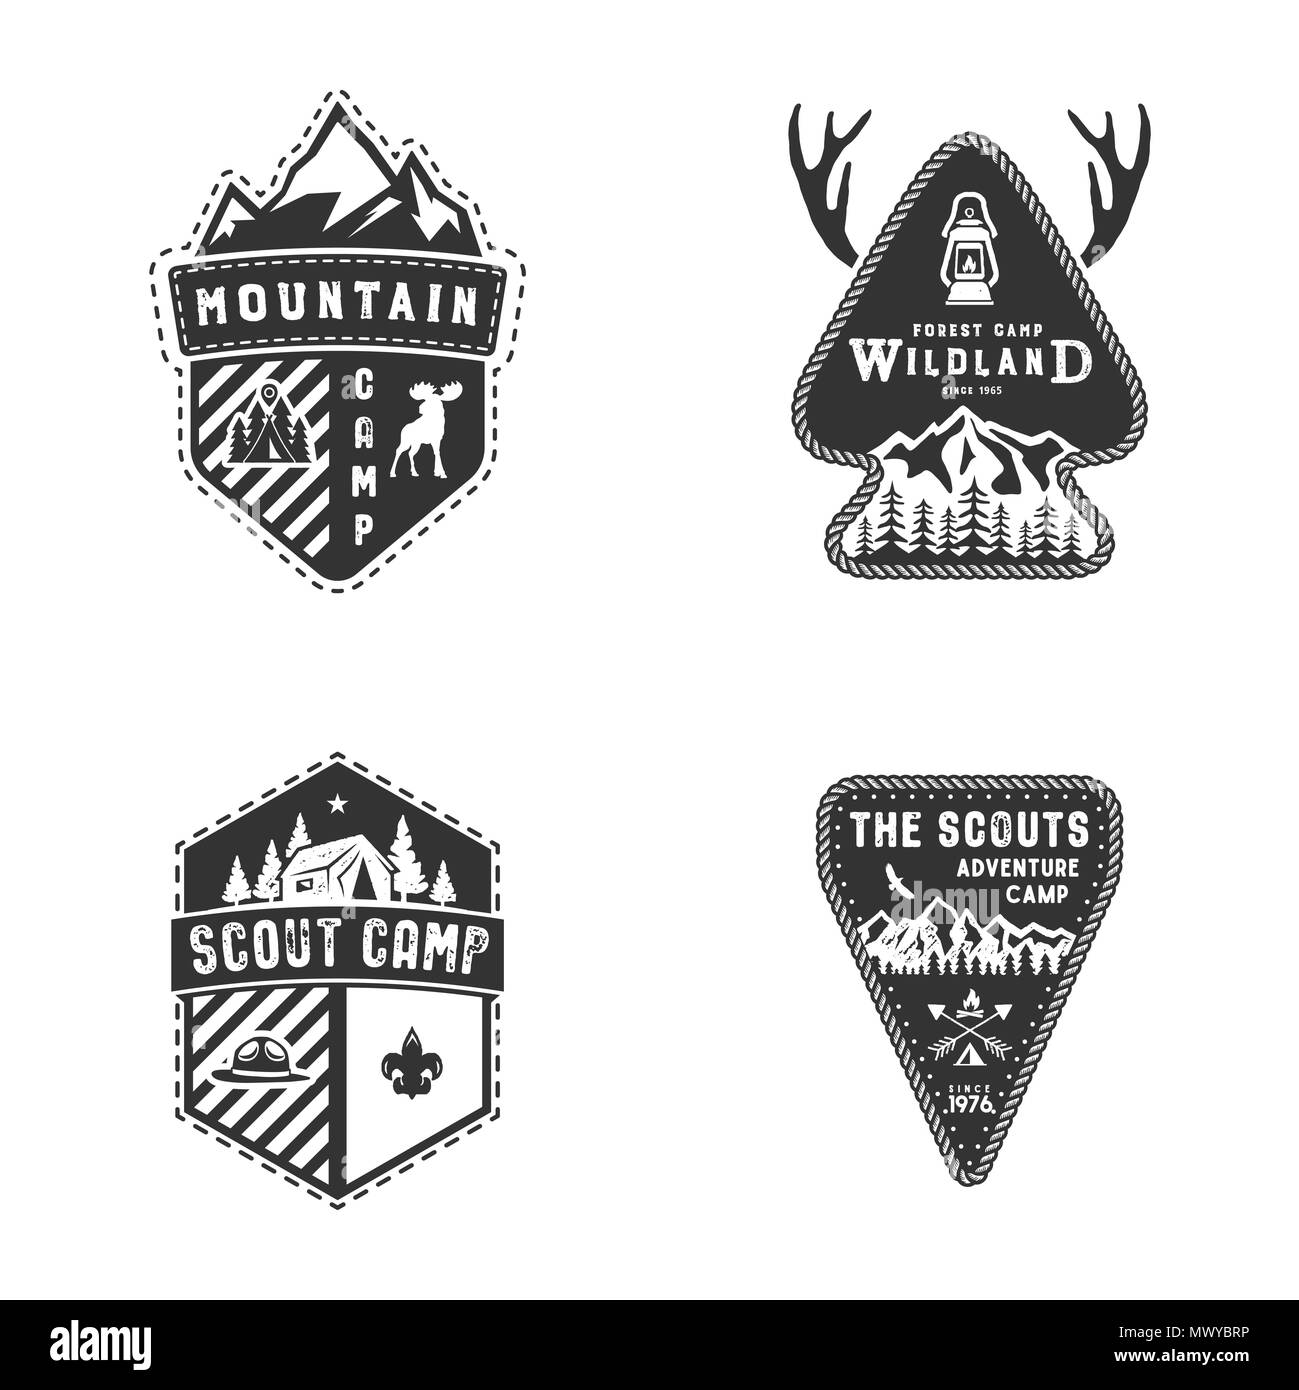 Travel badges, outdoor activity logo collection. Scout camps emblems. Vintage hand drawn travel badge design. Stock illustration, insignias, rustic patches. Isolated on white background - Stock Image